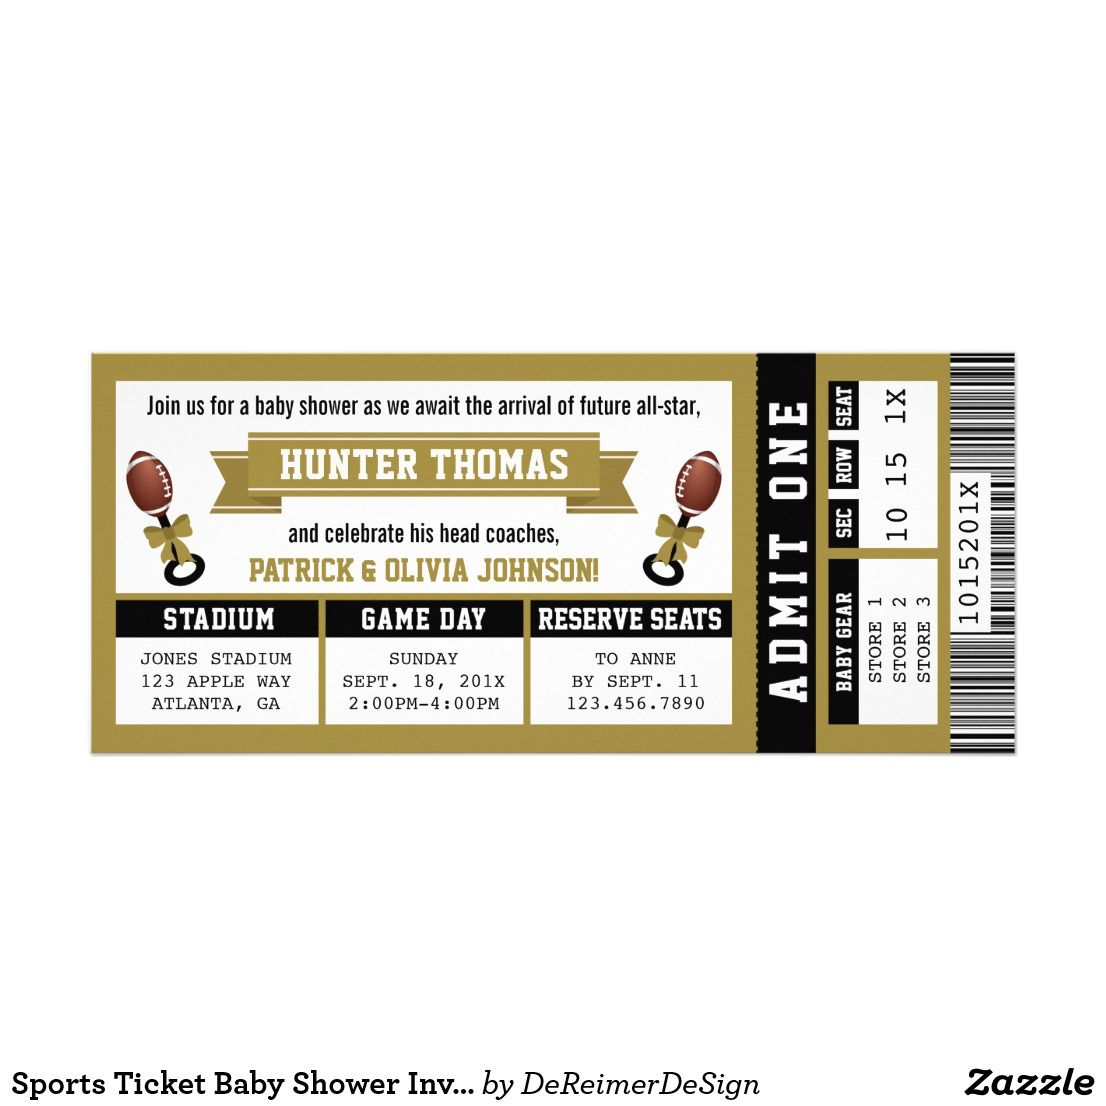 Sports Ticket Baby Shower Invitation Black Gold Kick Off The Celebration As You Await Arrival Of A Future Little All Star With This